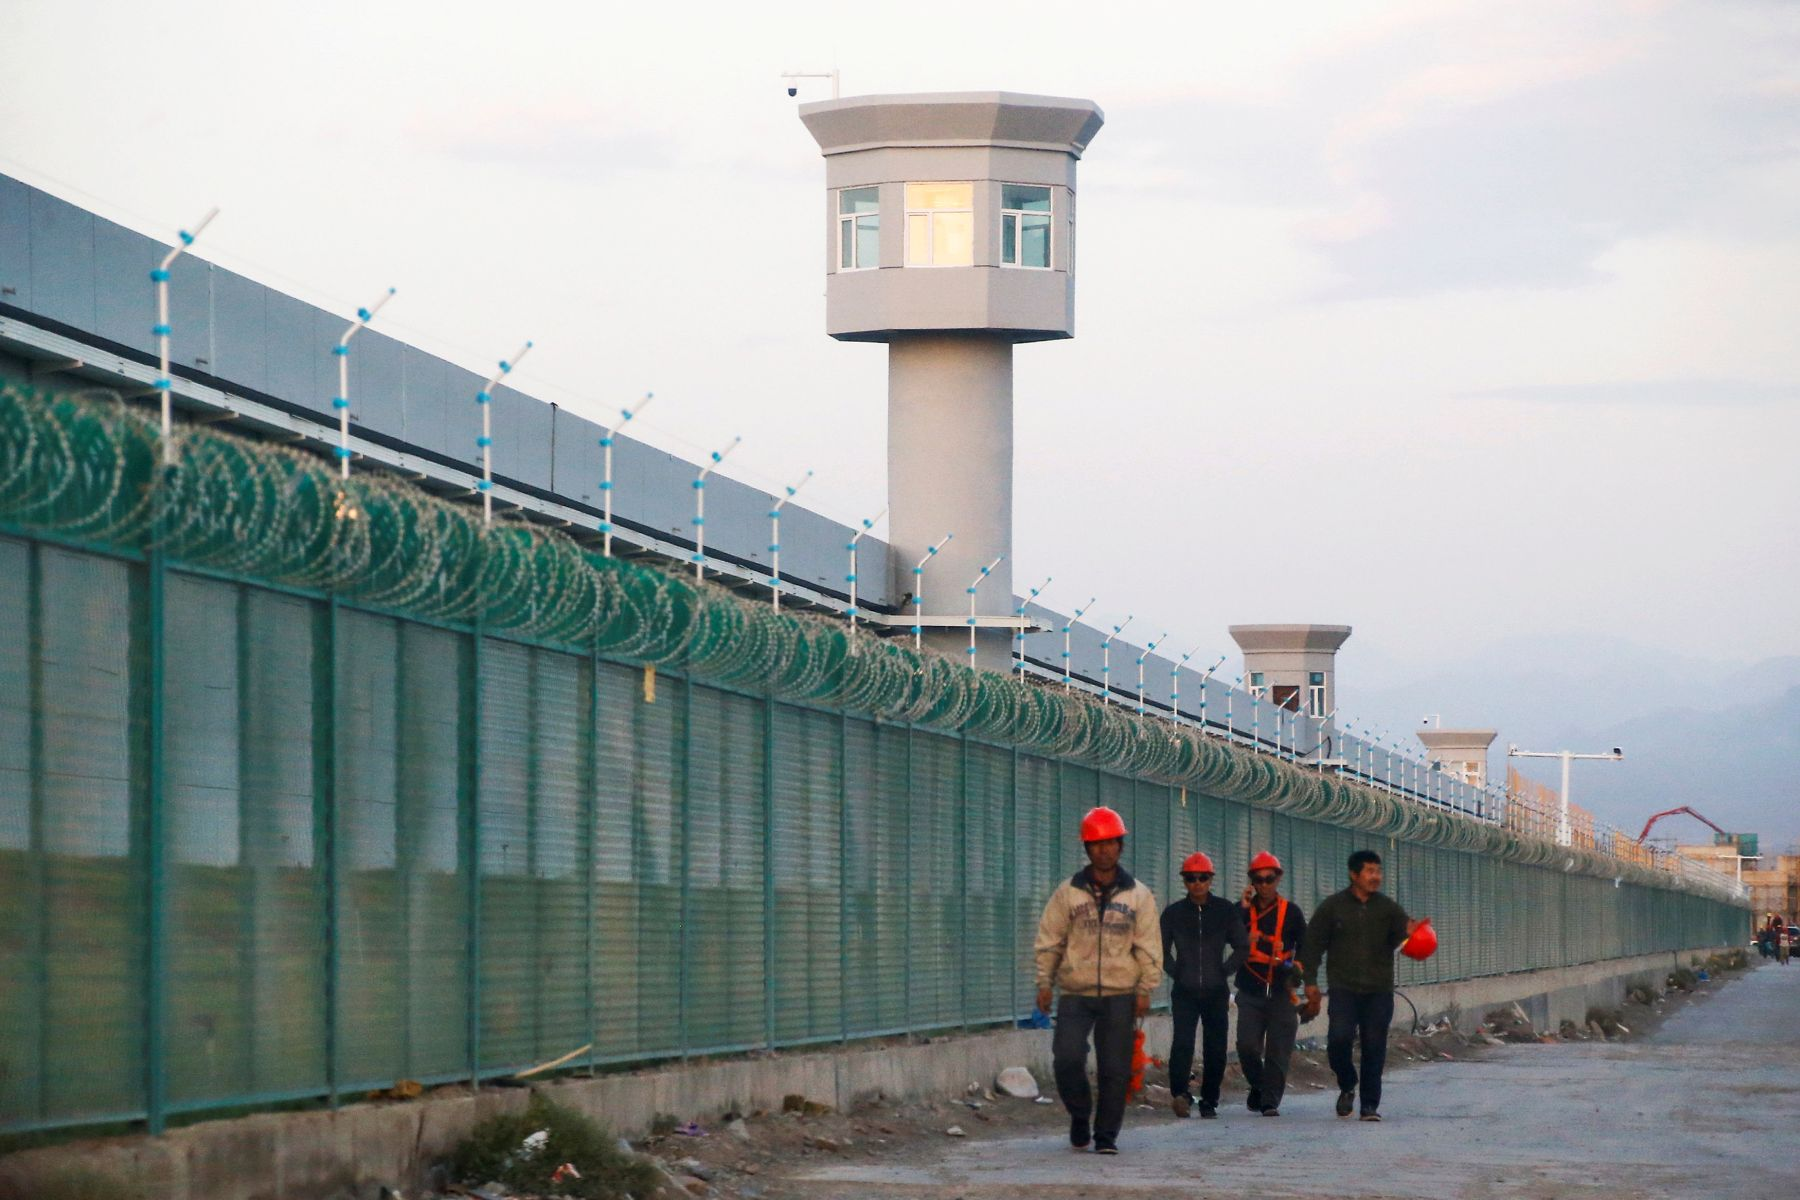 Workers walk by the perimeter fence of what is officially known as a vocational skills education centre in Dabancheng